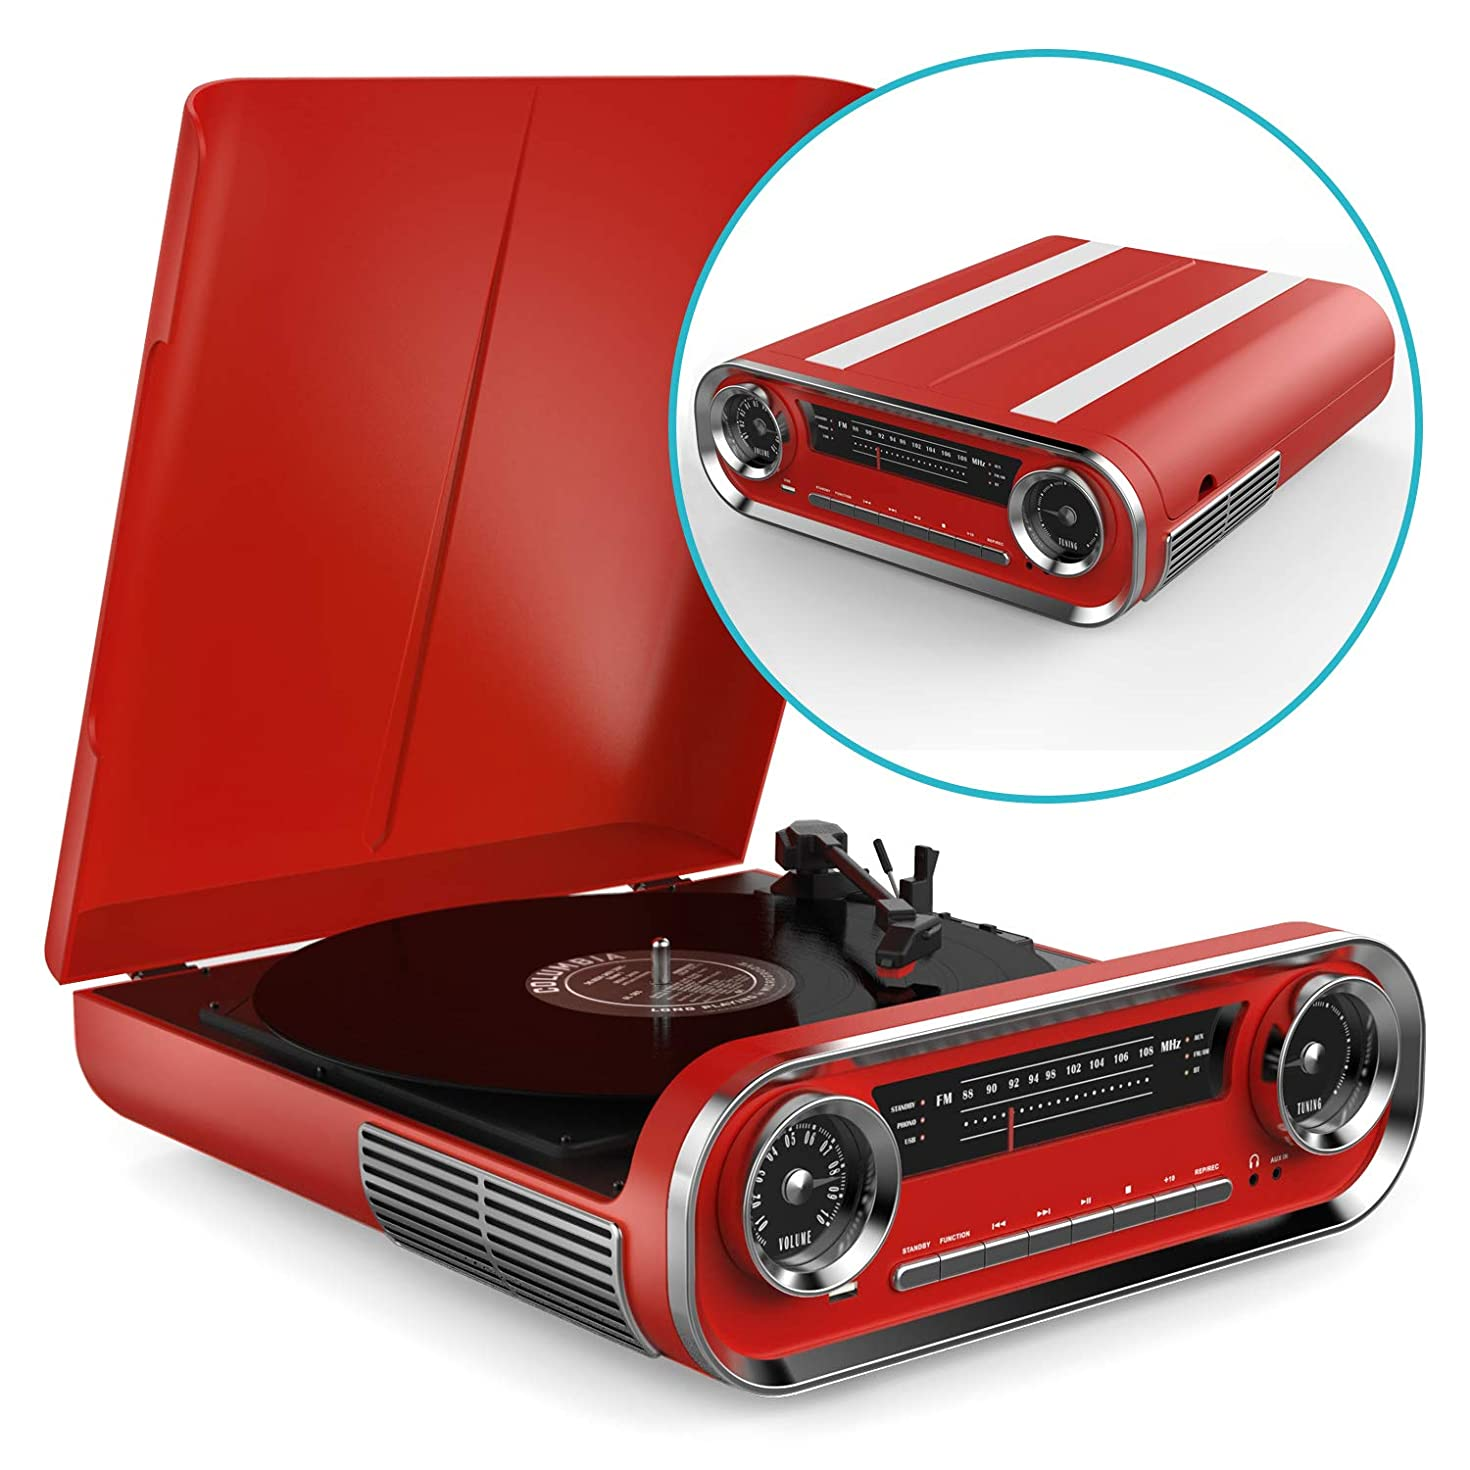 Record Player Bluetooth Vintage Vinyl Turntable with Speakers - USB MP3 Playback / Bluetooth / FM Radio / Vinyl LP Records – RCA, AUX and Headphone Output (Red)